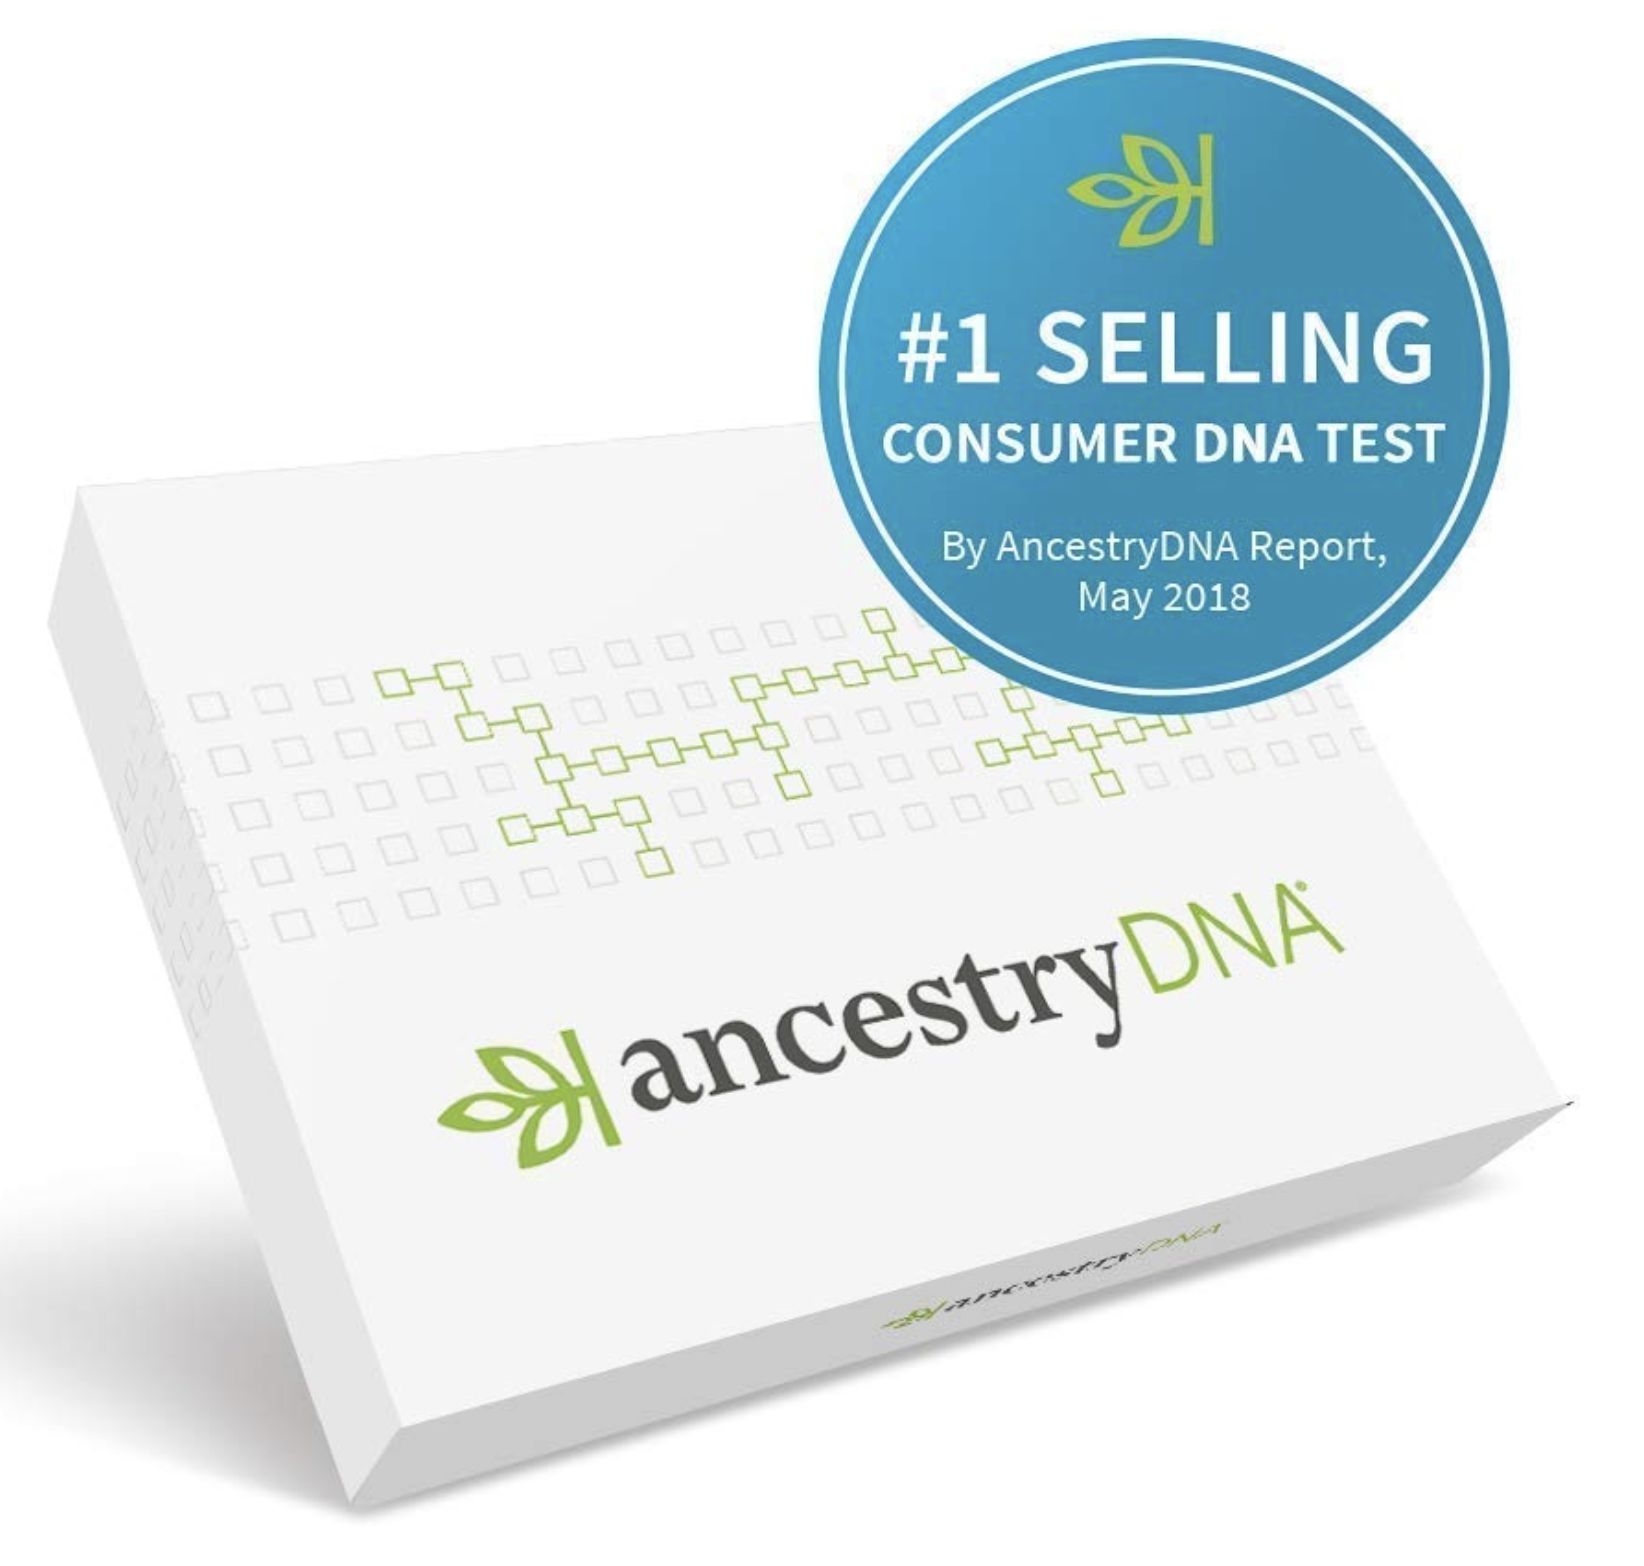 ancestrydna genetic testing kit for just  49 shipped